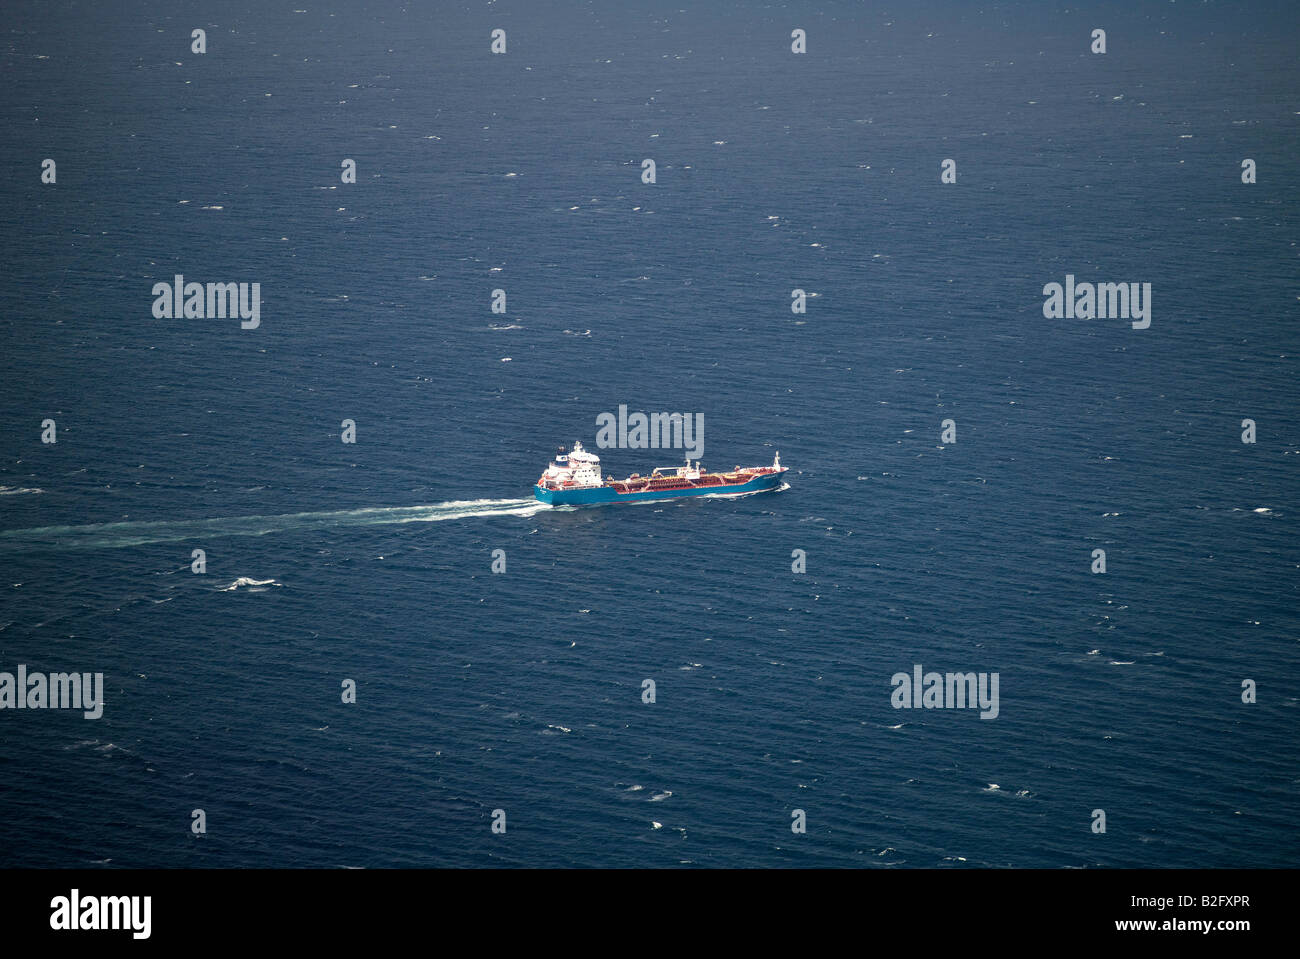 Oil Tanker at the mouth of the Firth of Forth, entering the North Sea, Eastern Scotland - Stock Image